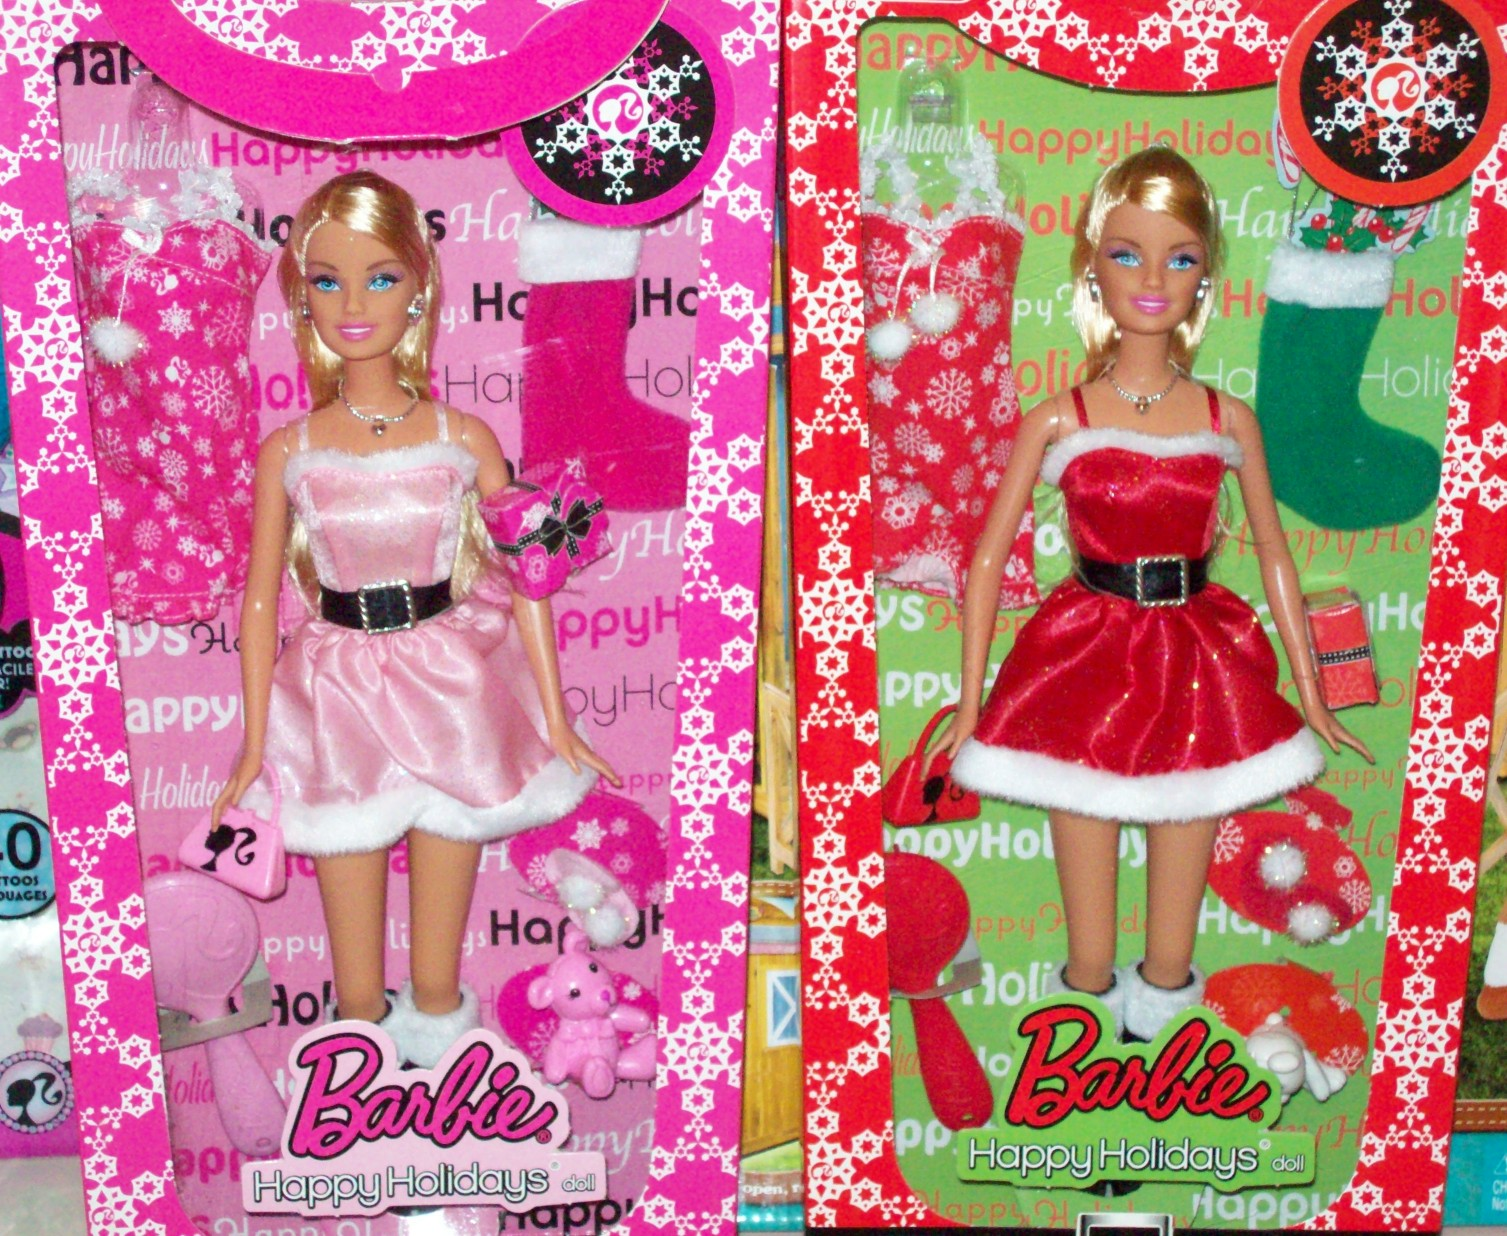 Target Barbie Holiday Exclusives 2009